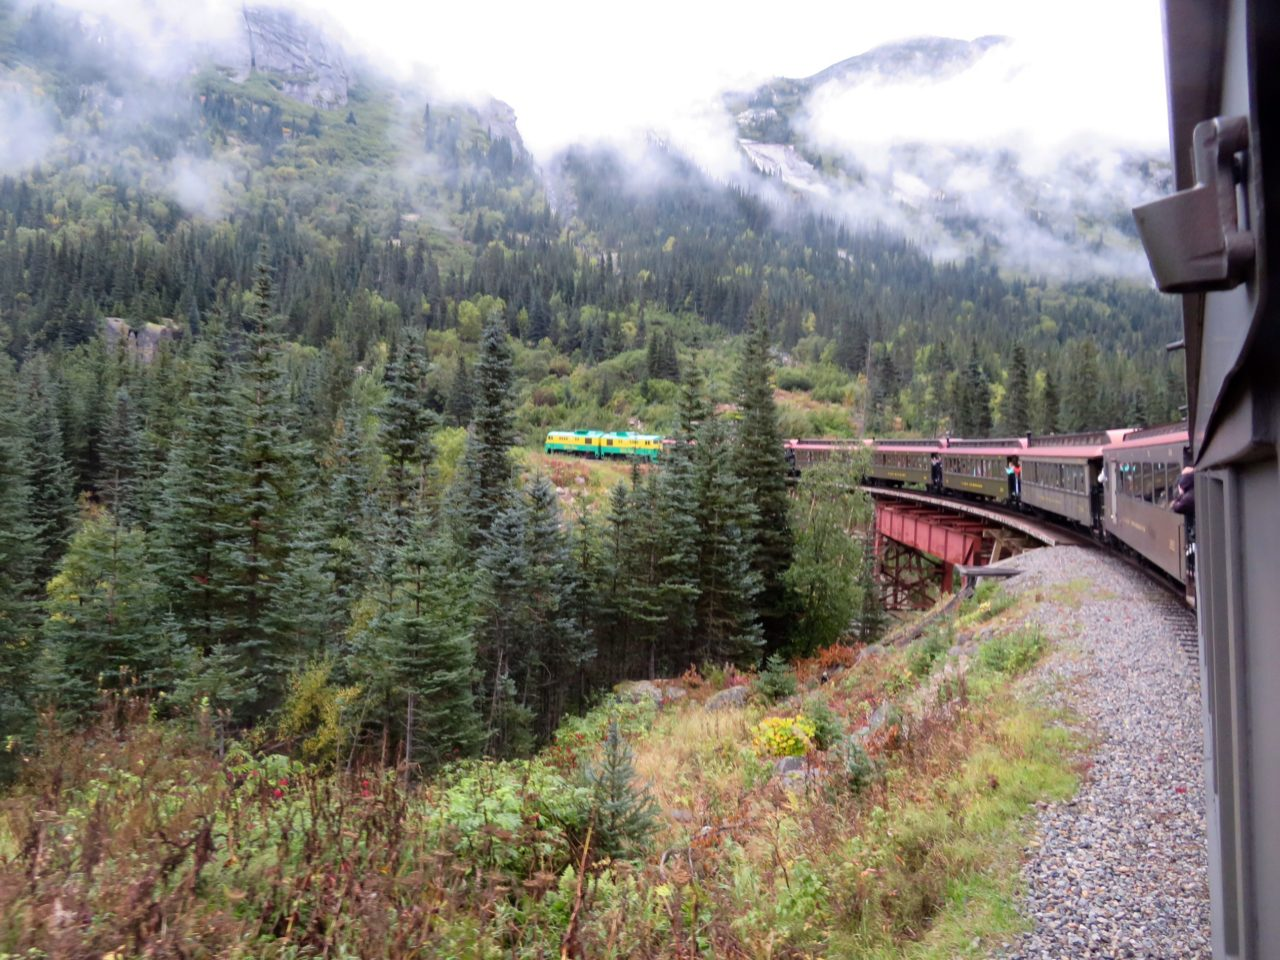 Aboard the scenic White Pass and Yukon Route Railroad during our Alaska Cruise with Princess Cruises